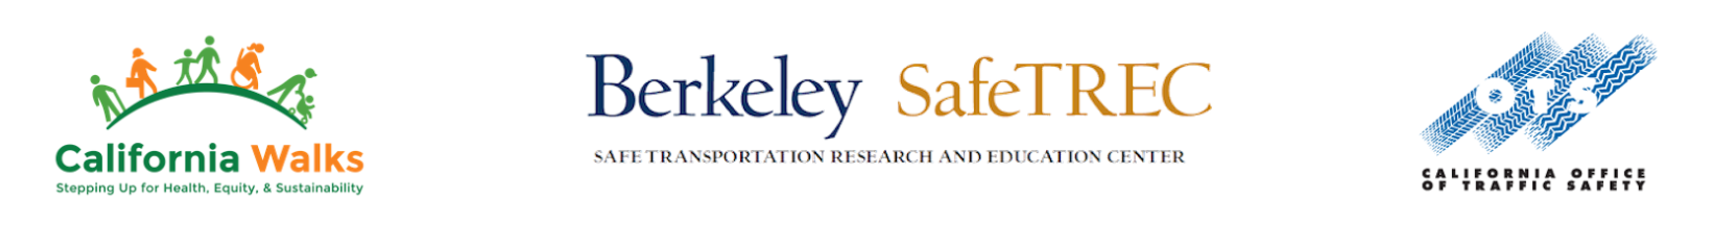 Cal_Walks-SafeTREC-OTS_combined_logos.png